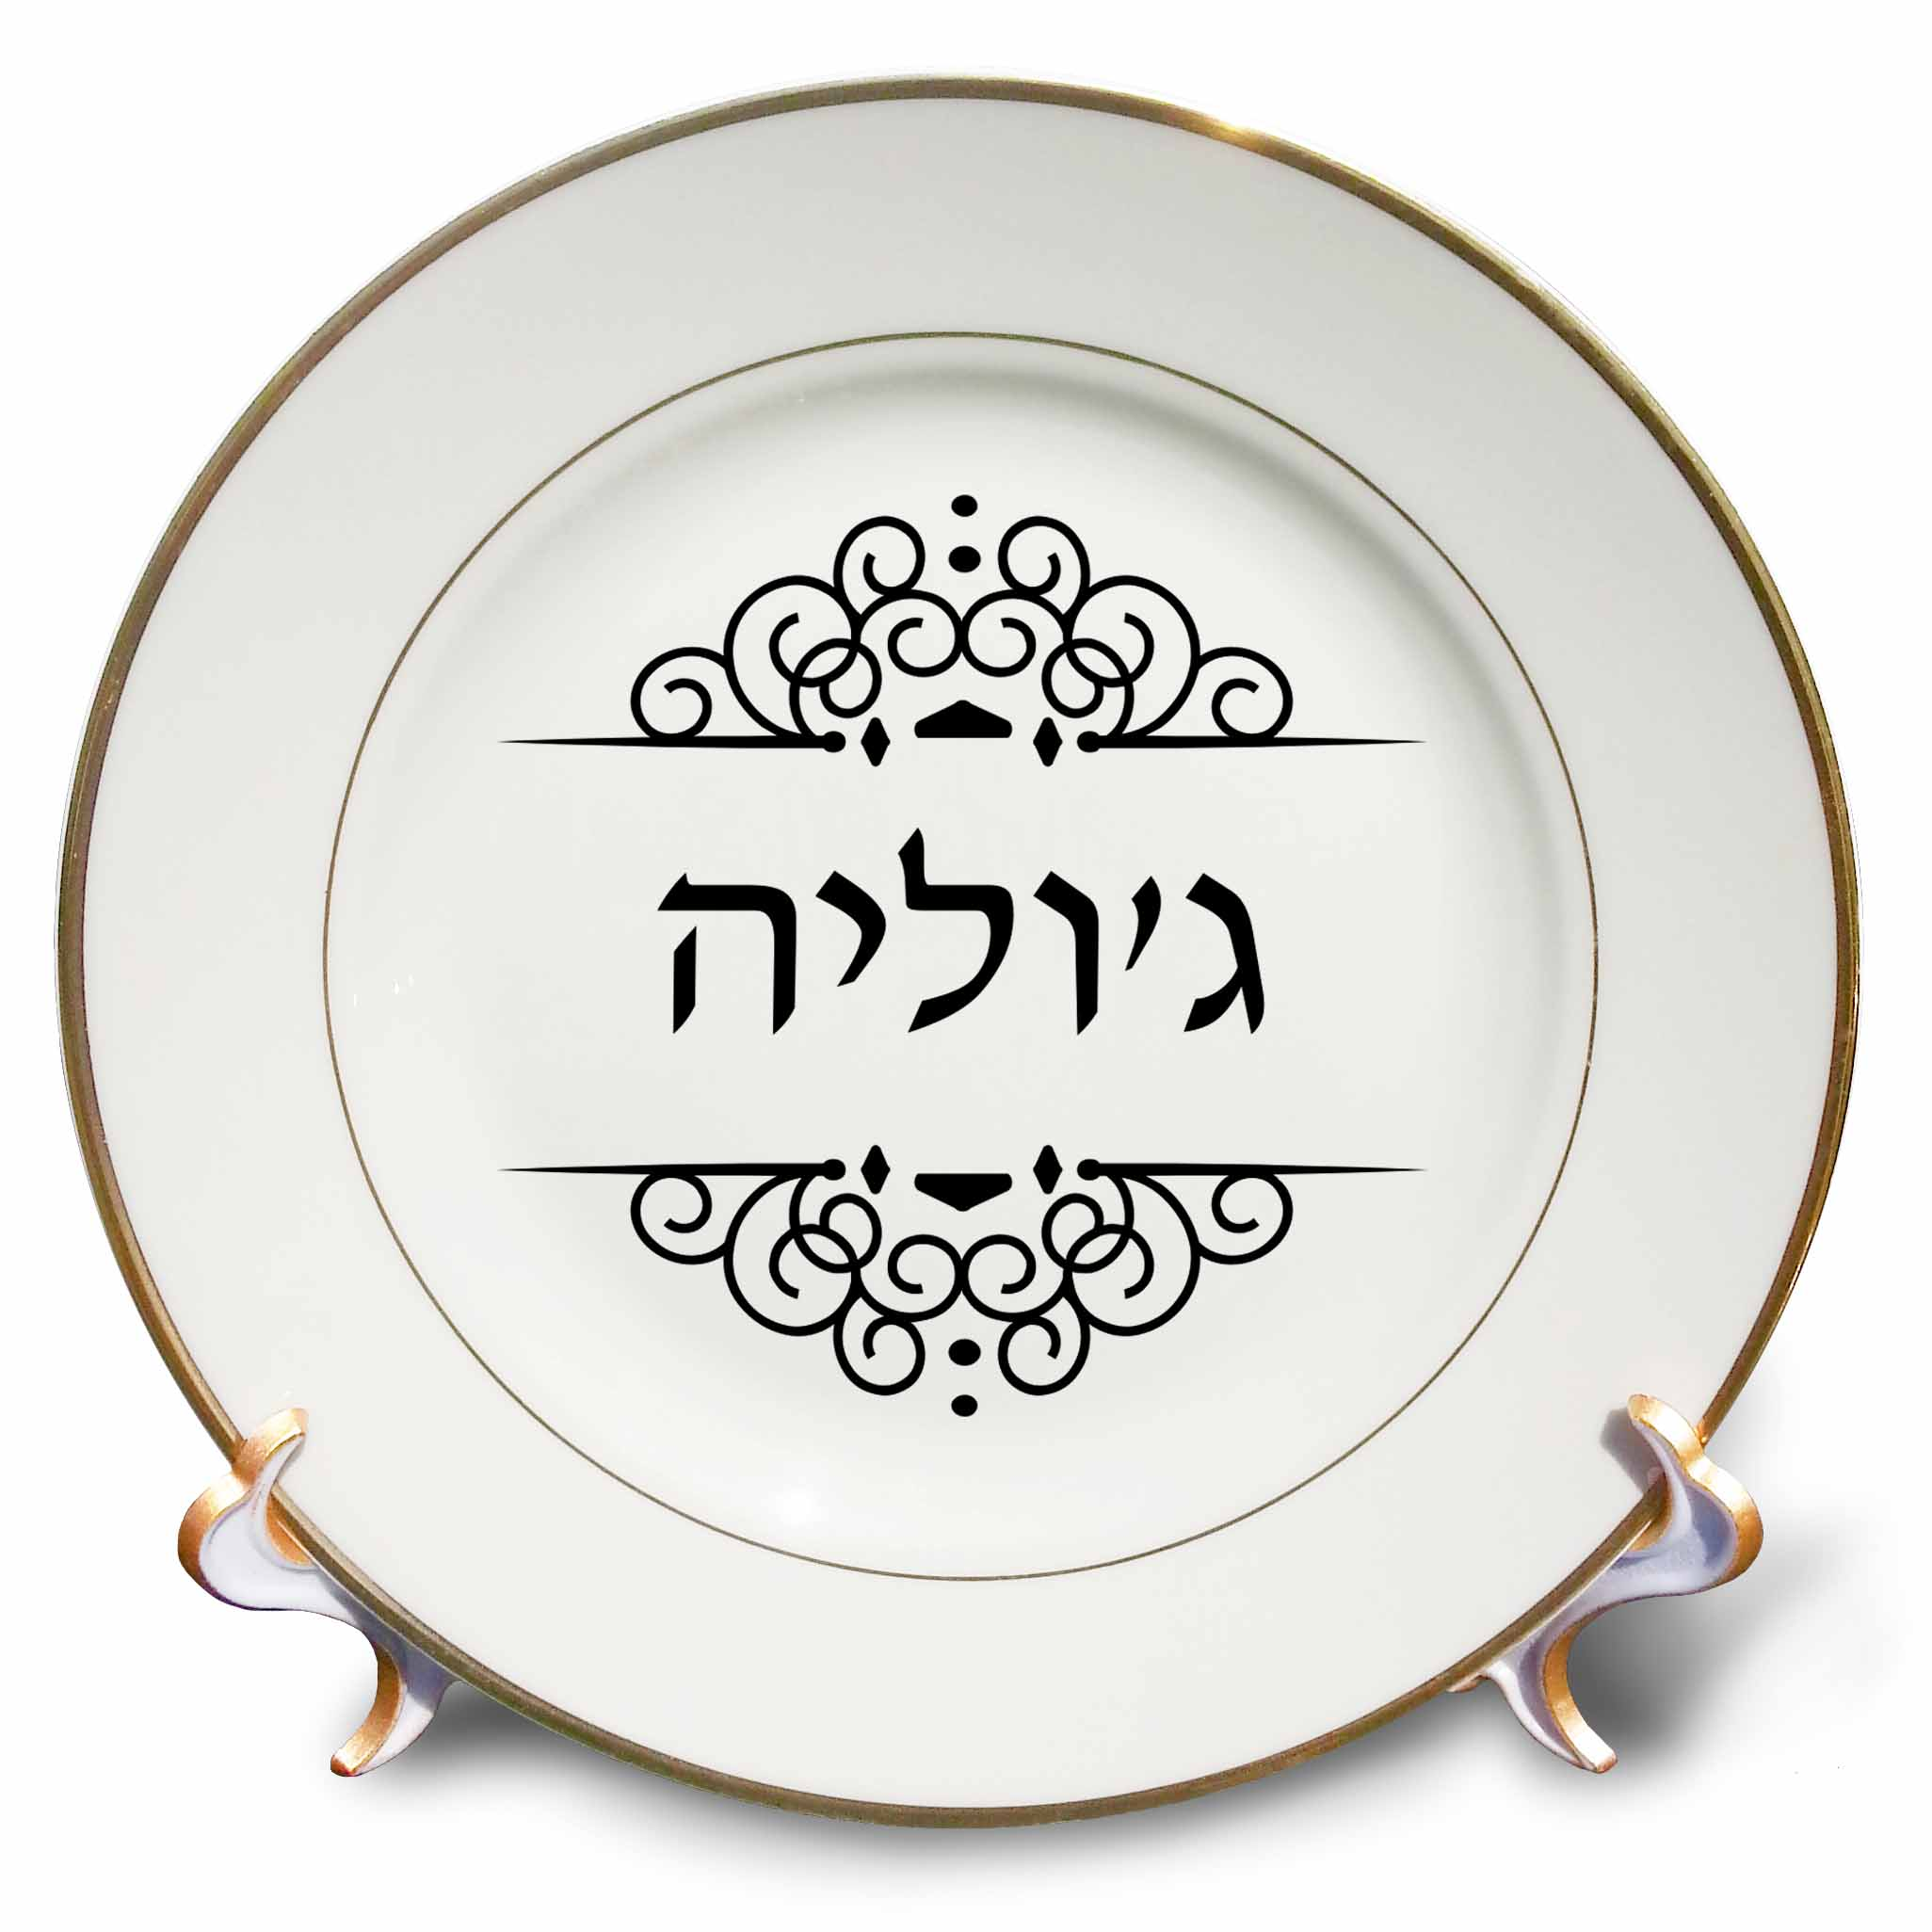 3dRose Julia name in Hebrew writing Personalized black and white ivrit text, Porcelain Plate, 8-inch